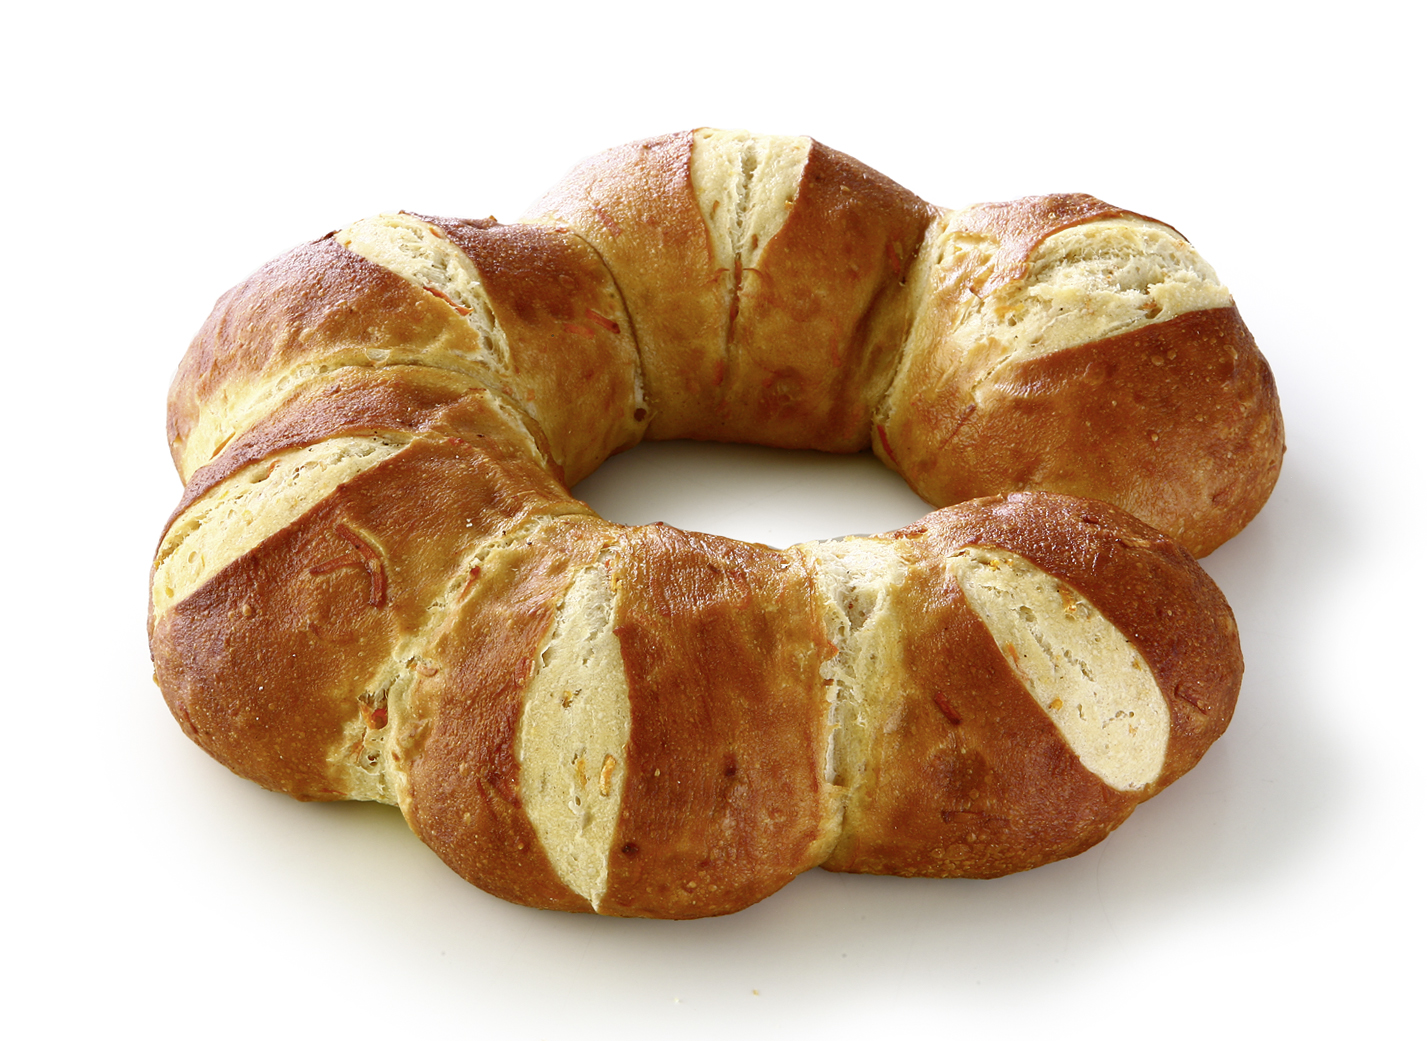 Lye crown carrot - Lye bakery product with 8% carrots/ suitable for vegetarians and a lactose free dict/ Diameter: 20cm